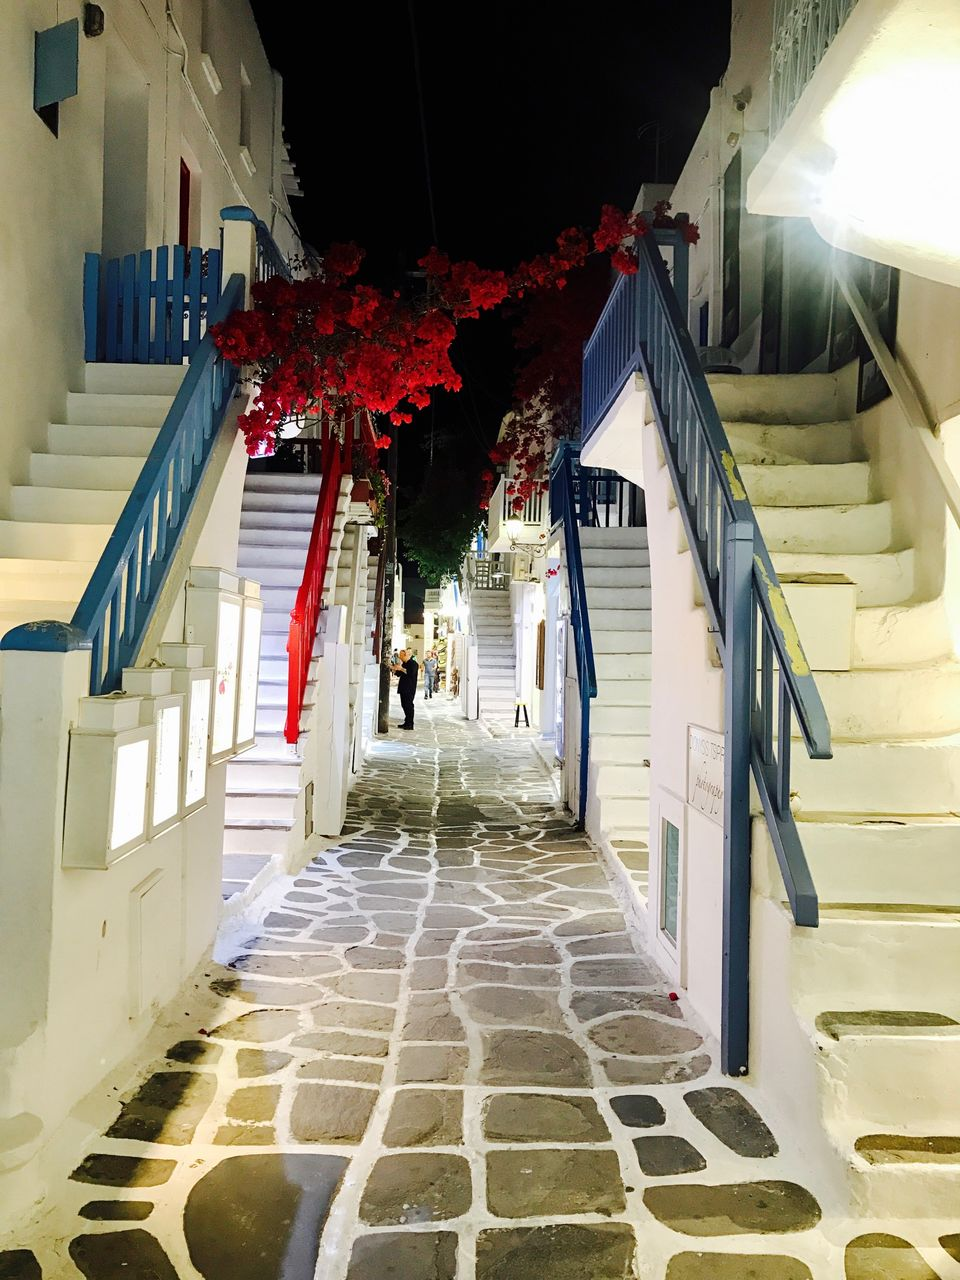 Photo of Pelican Hotel Ξενοδοχείο, Mikonos, Greece by Swati Singh